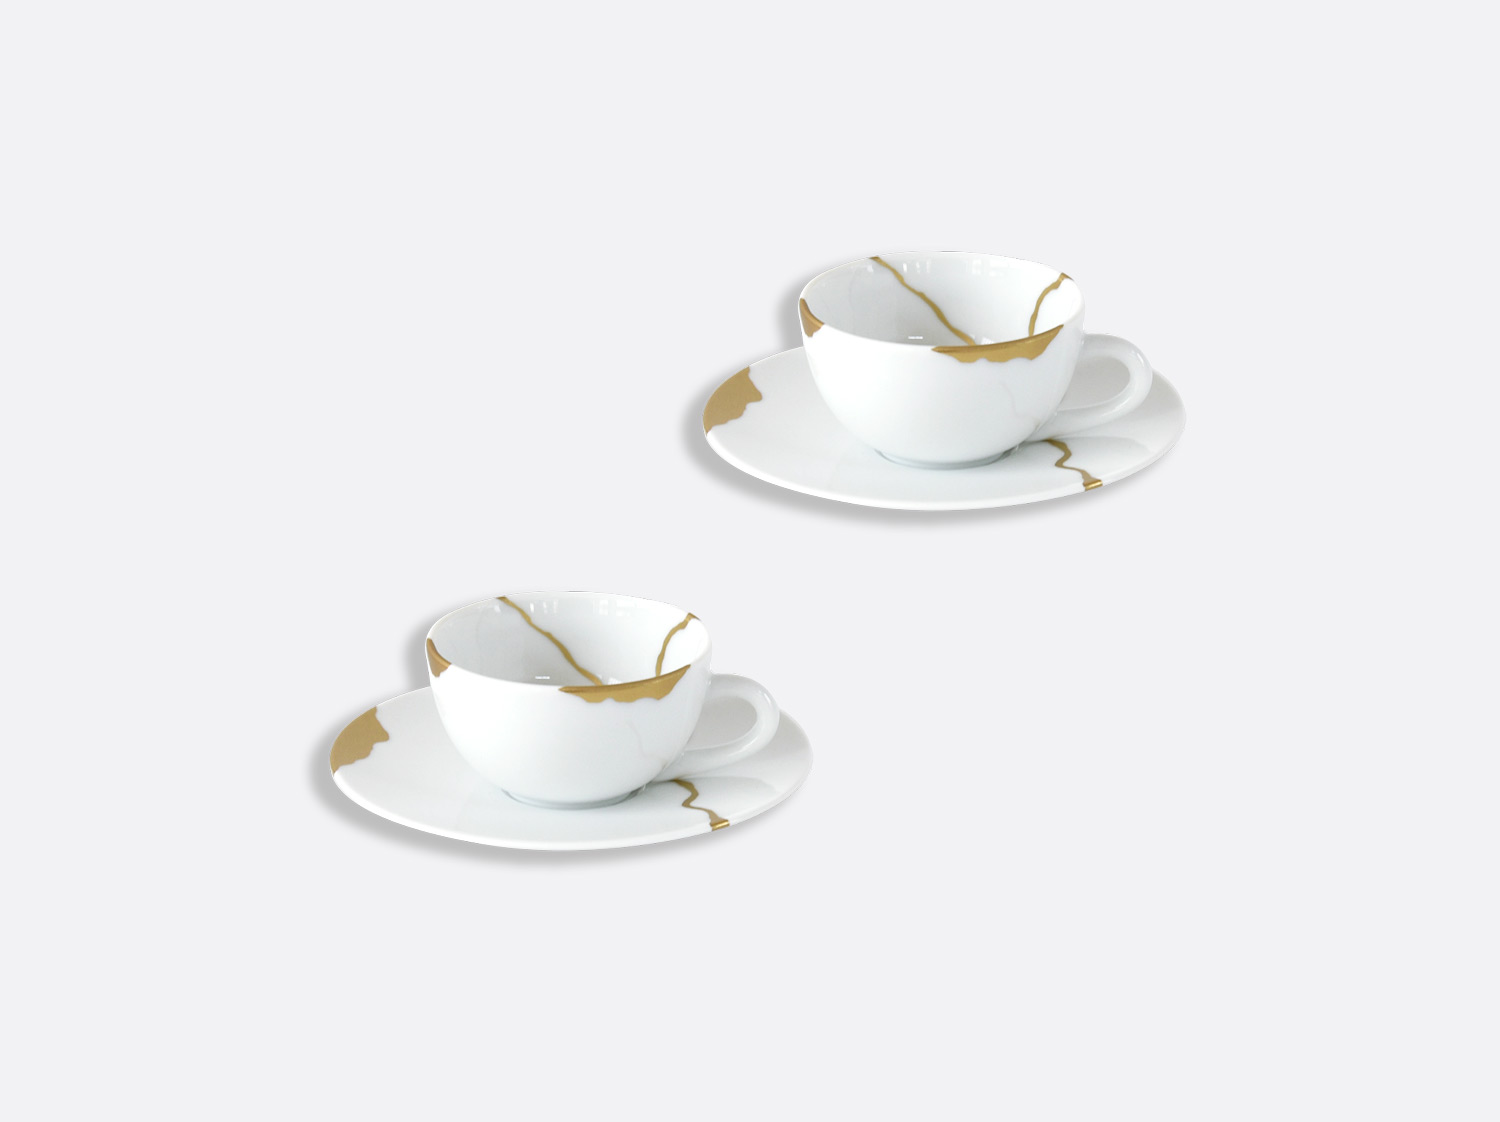 China Set of espresso cups and saucers 10 cl of the collection Kintsugi | Bernardaud